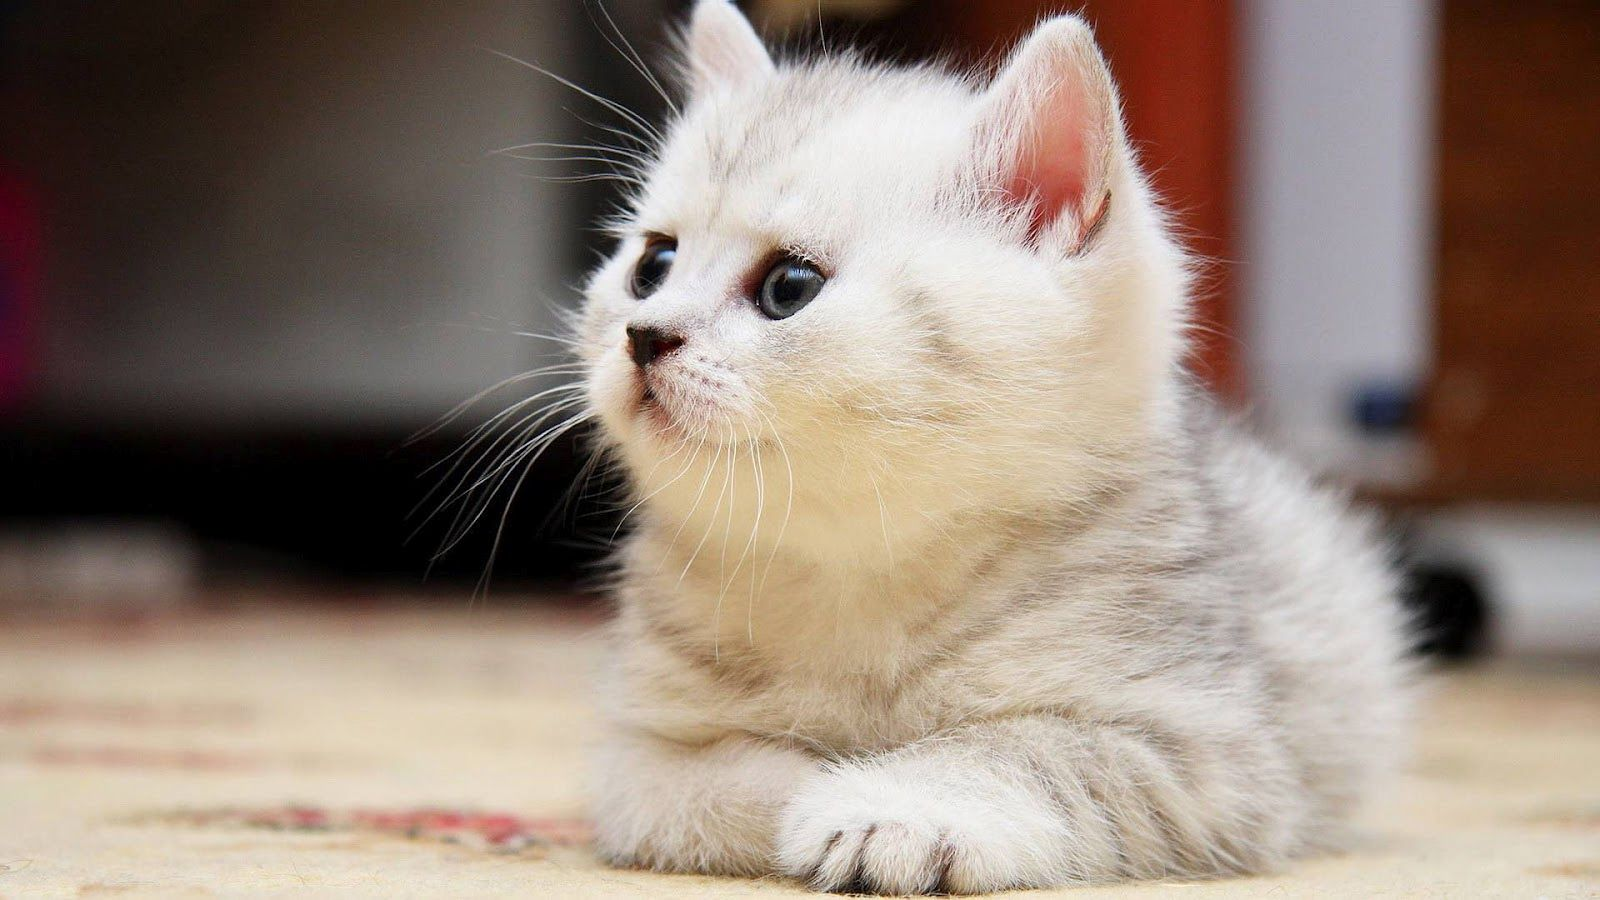 Cats HD Images Get Free top quality Cats HD Images for your